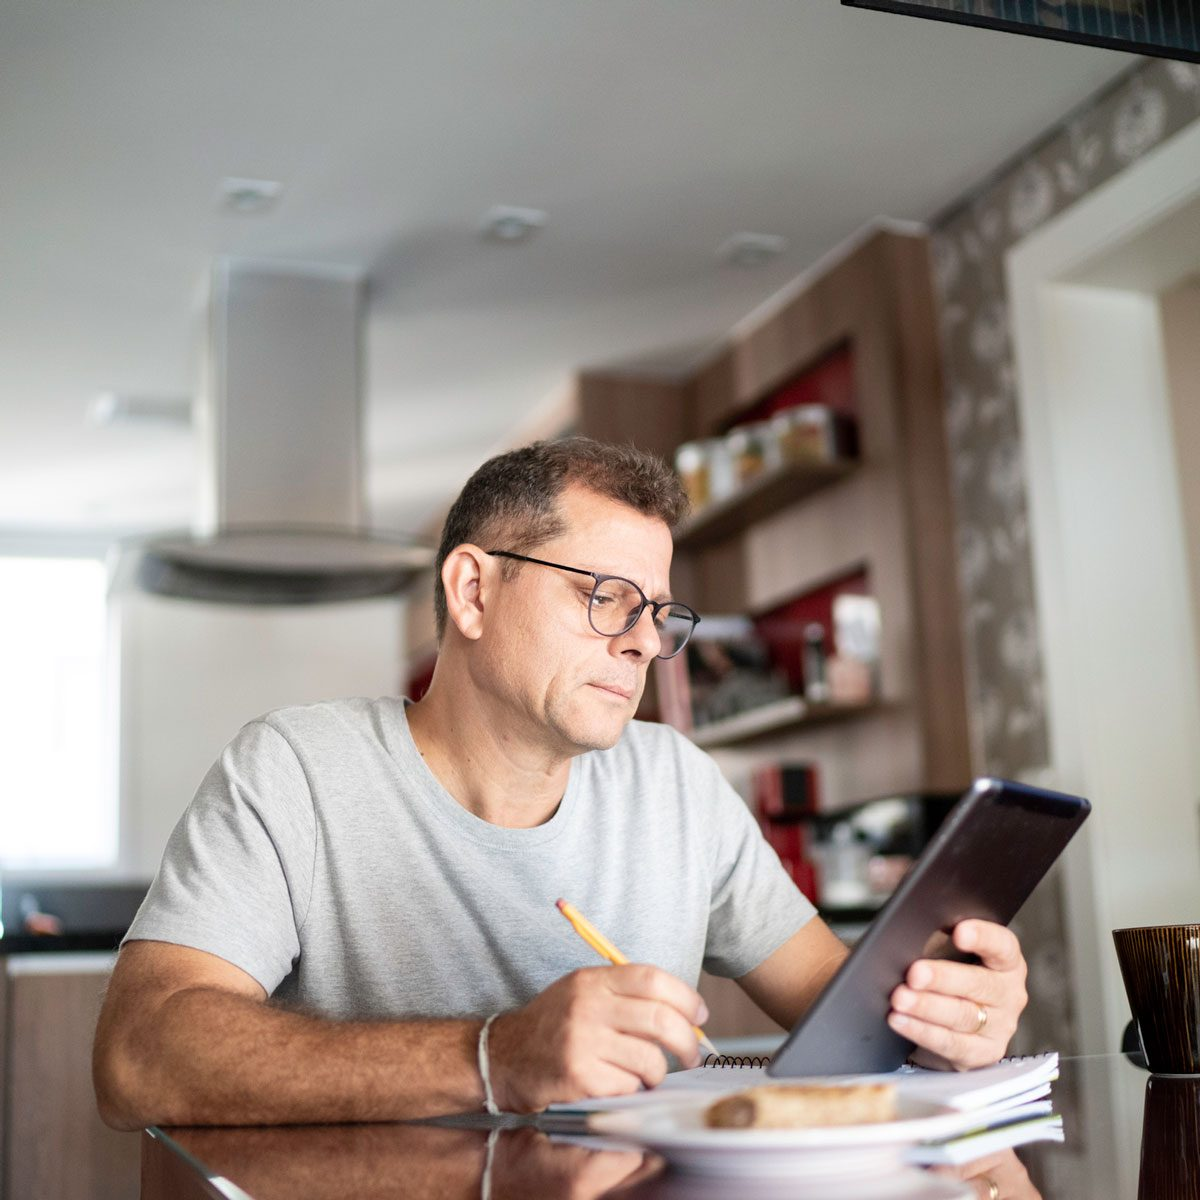 Man reading Reddit home improvement tips on a tablet